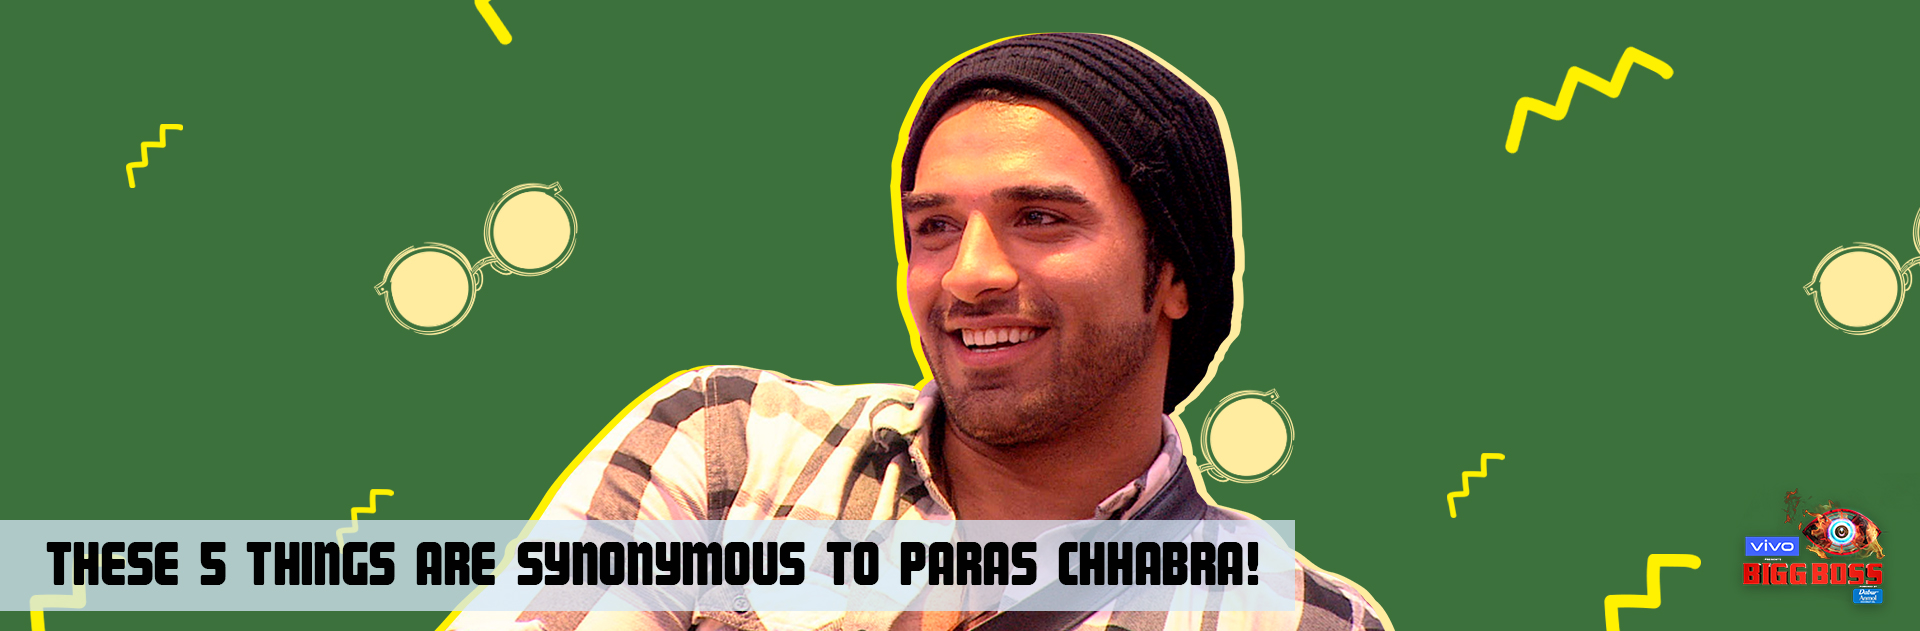 Here's everything Paras Chhabra is known for –